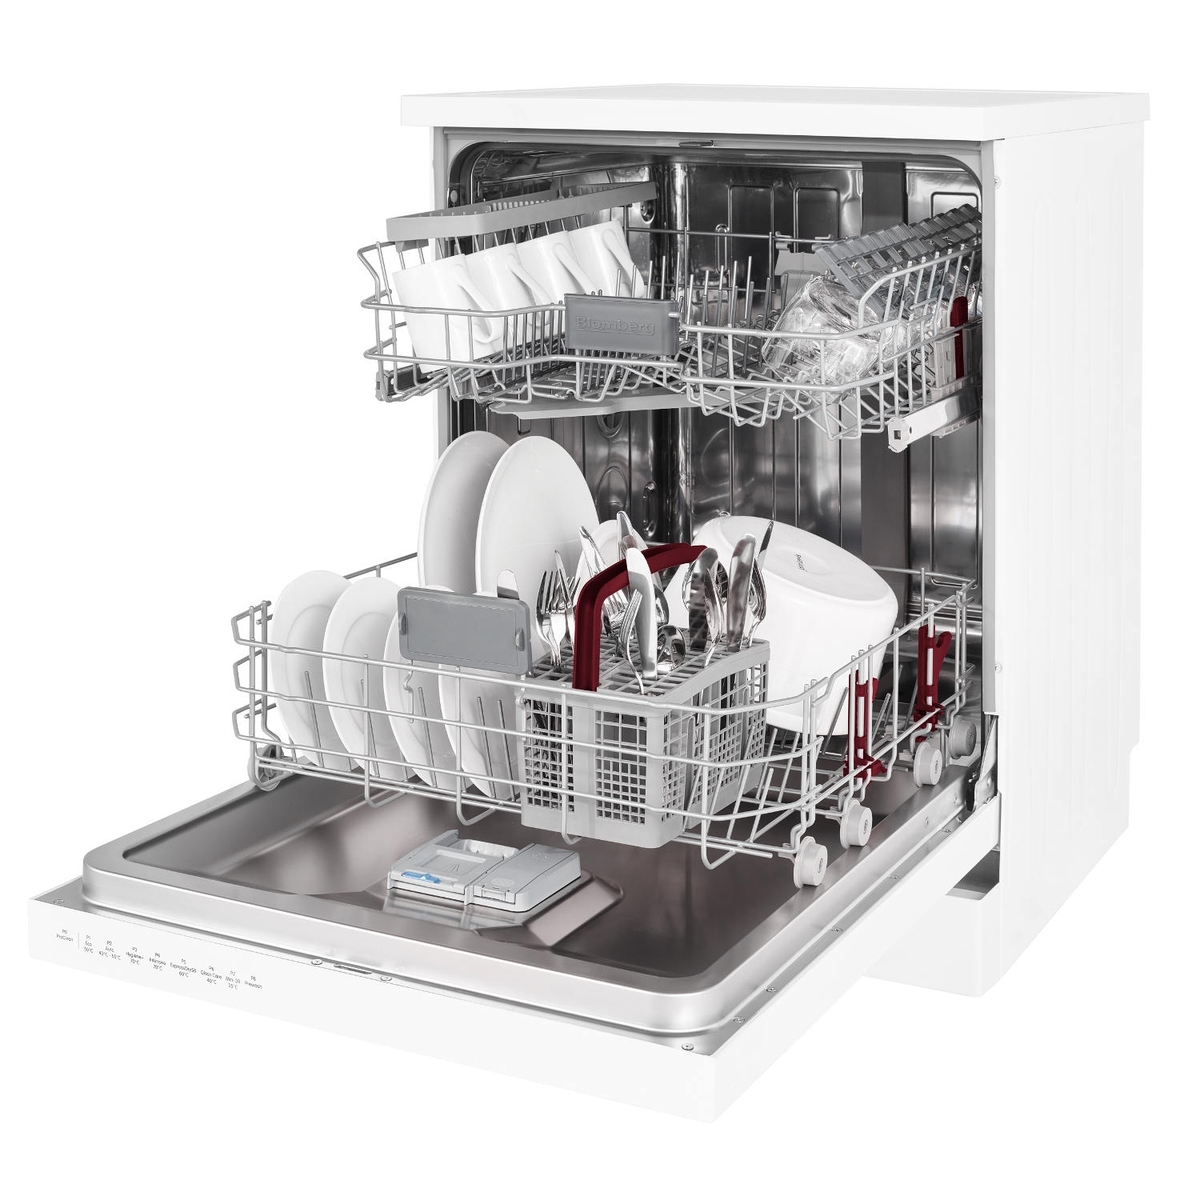 Compare retail prices of Blomberg LDF42240W A 60cm Full Size Dishwasher in White to get the best deal online